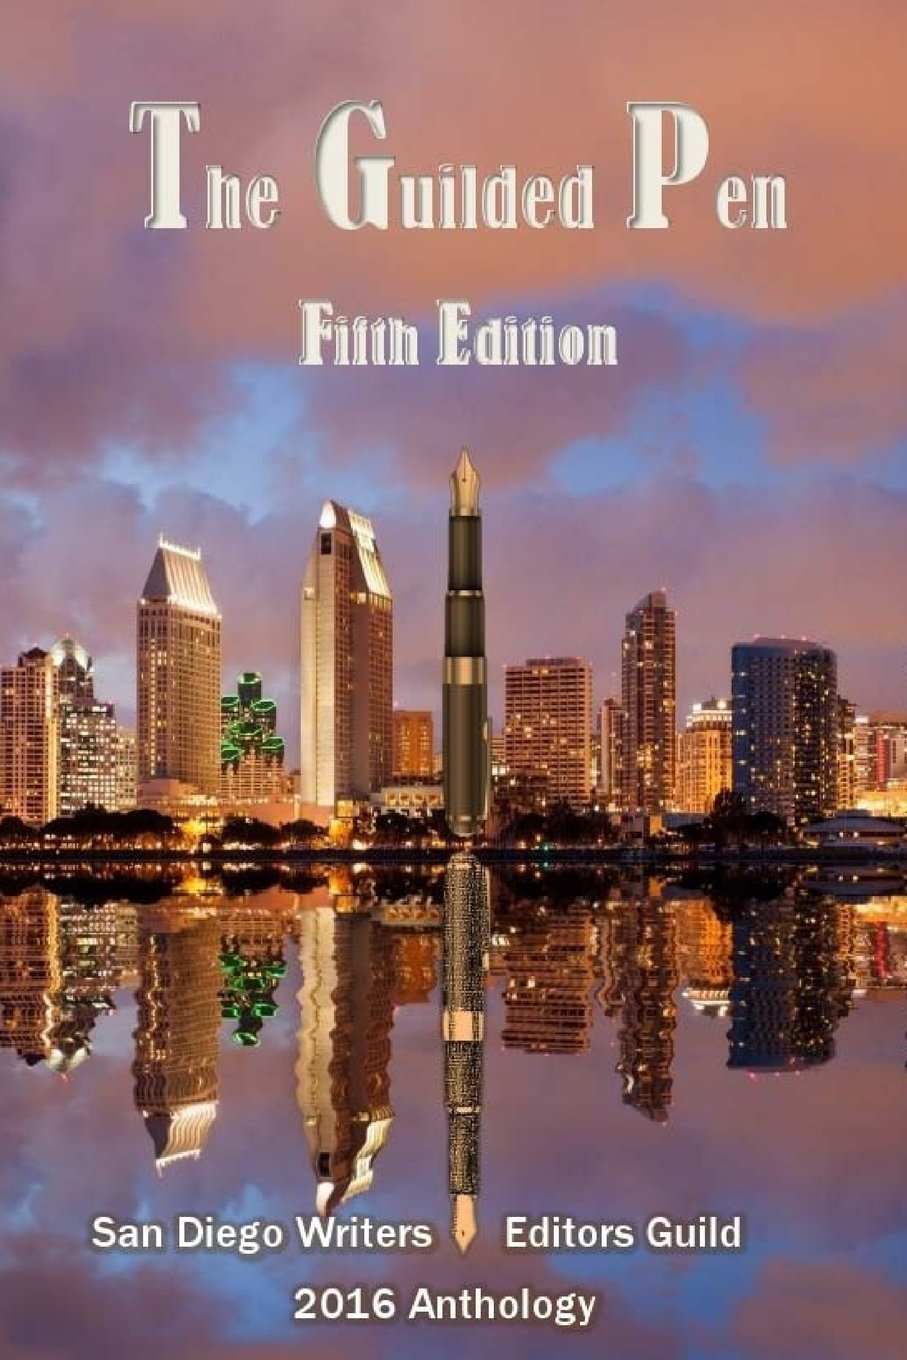 The Guilded Pen - Fifth Edition - 2016: Fifth Edition - 2016 (Anthology of the San Diego Writers/Editors Guild) (Volume 5) pdf